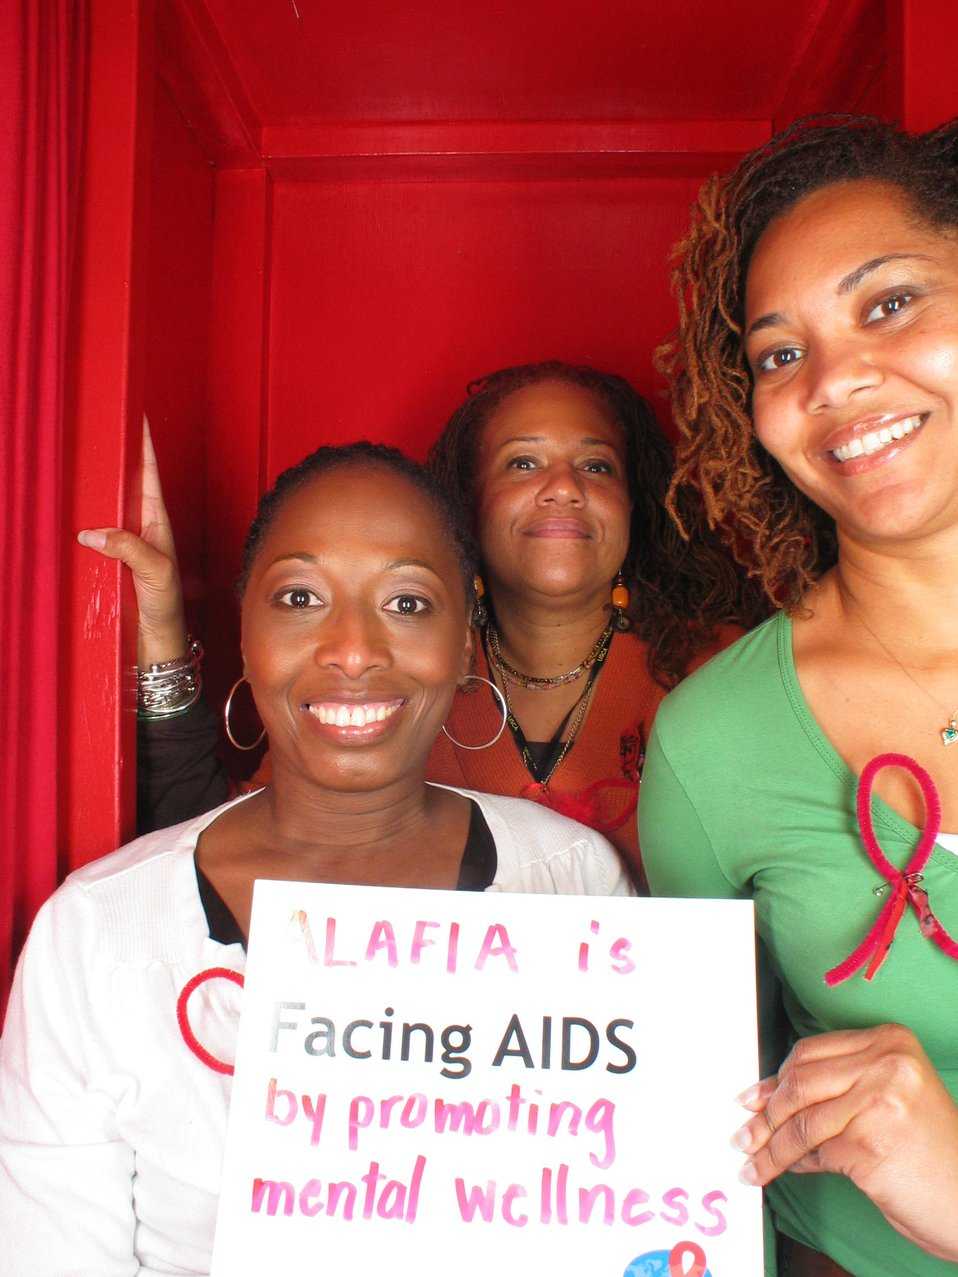 Facing AIDS by promoting mental wellness.